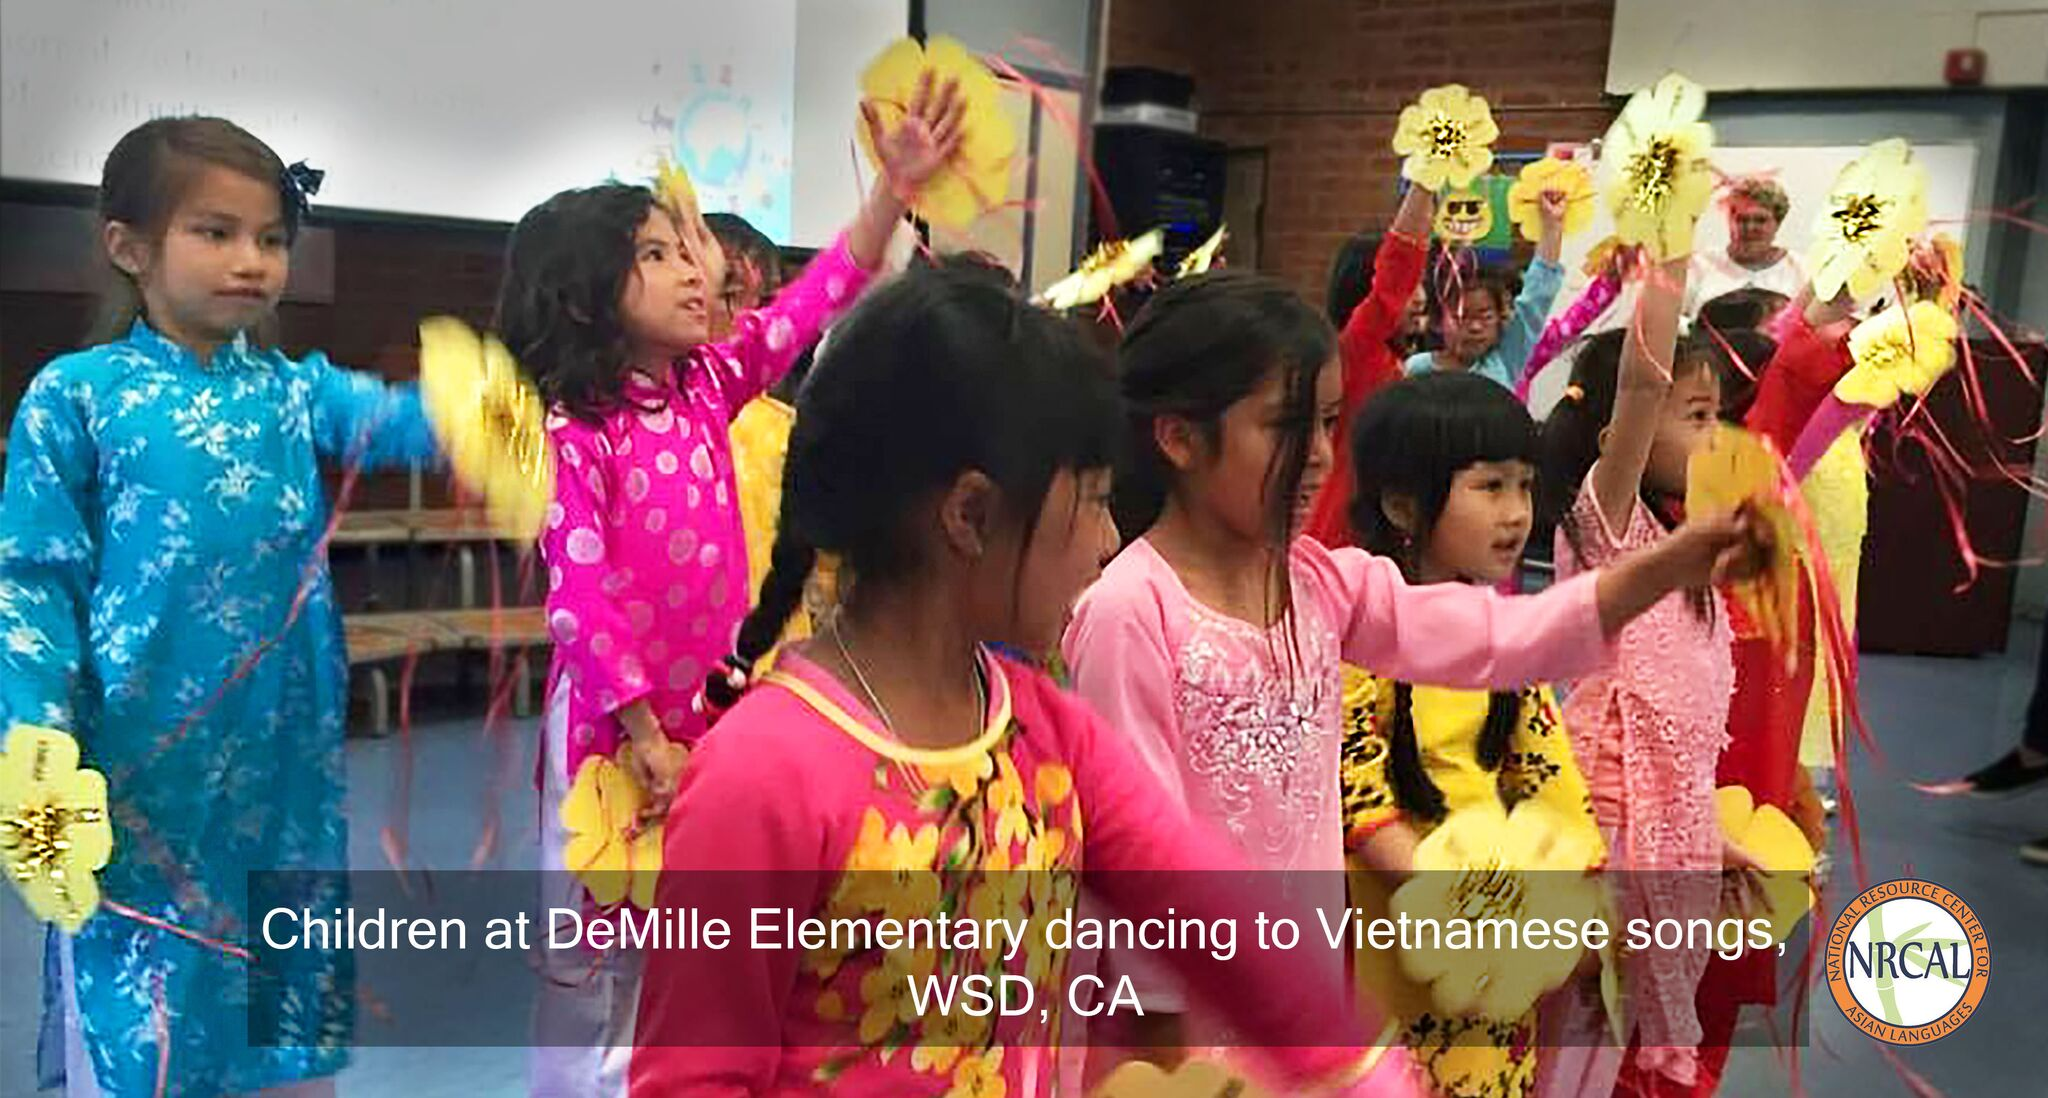 Kids at Demille